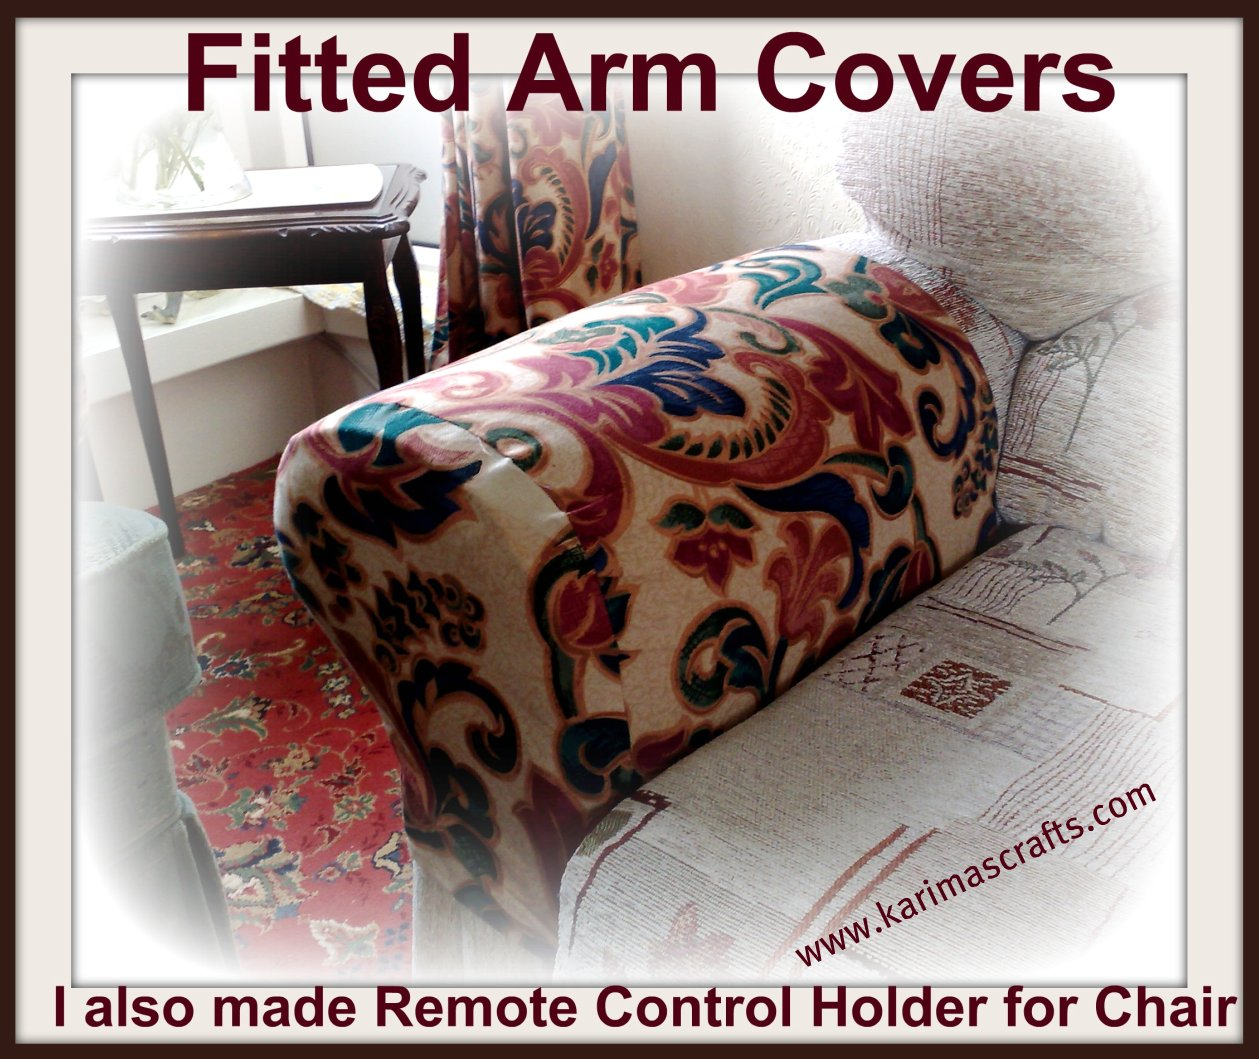 Arm Chair Cap Covers For Weddings Rentals Karima 39s Crafts And Remote Control Holder